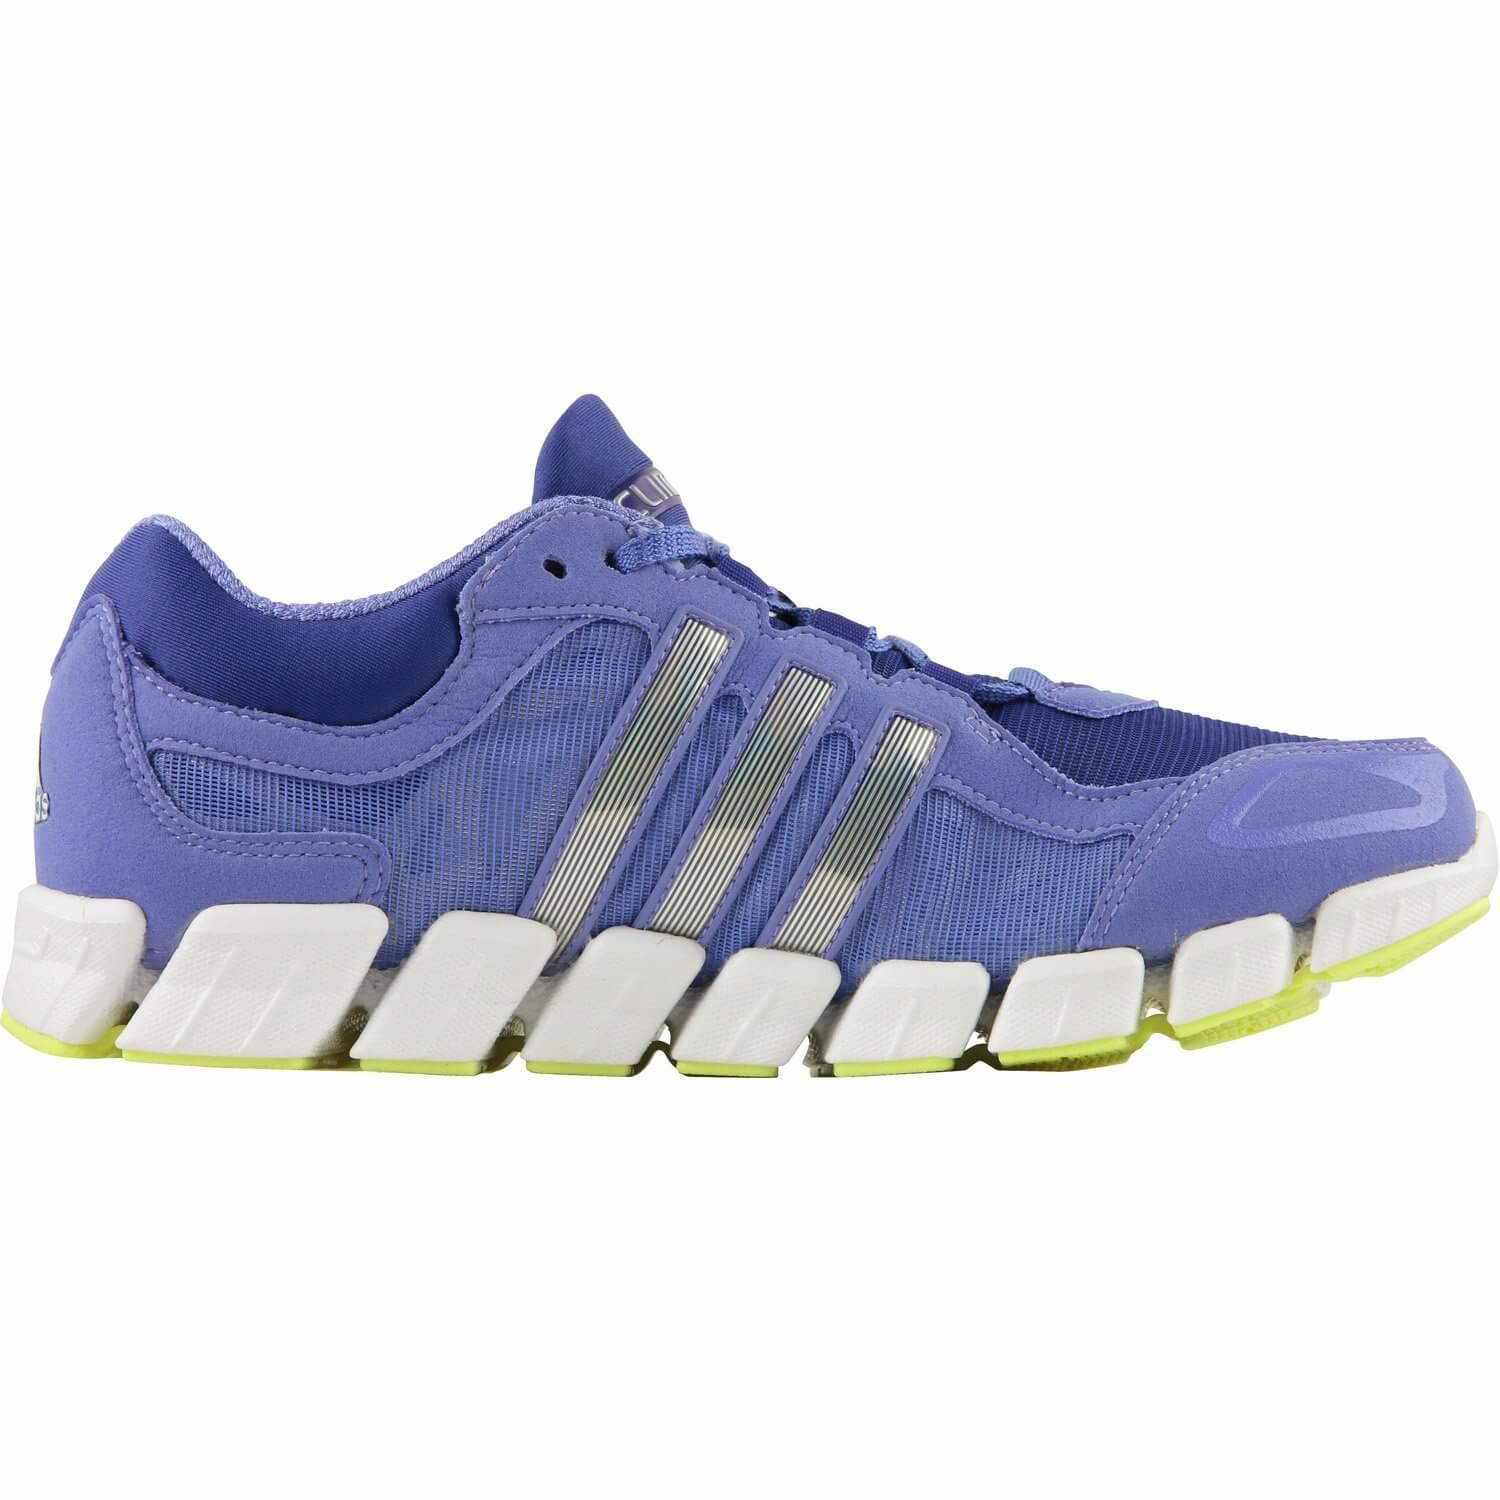 A cushioned and flexible midsole promote a natural stride while wearing the Adidas Climacool Freshride